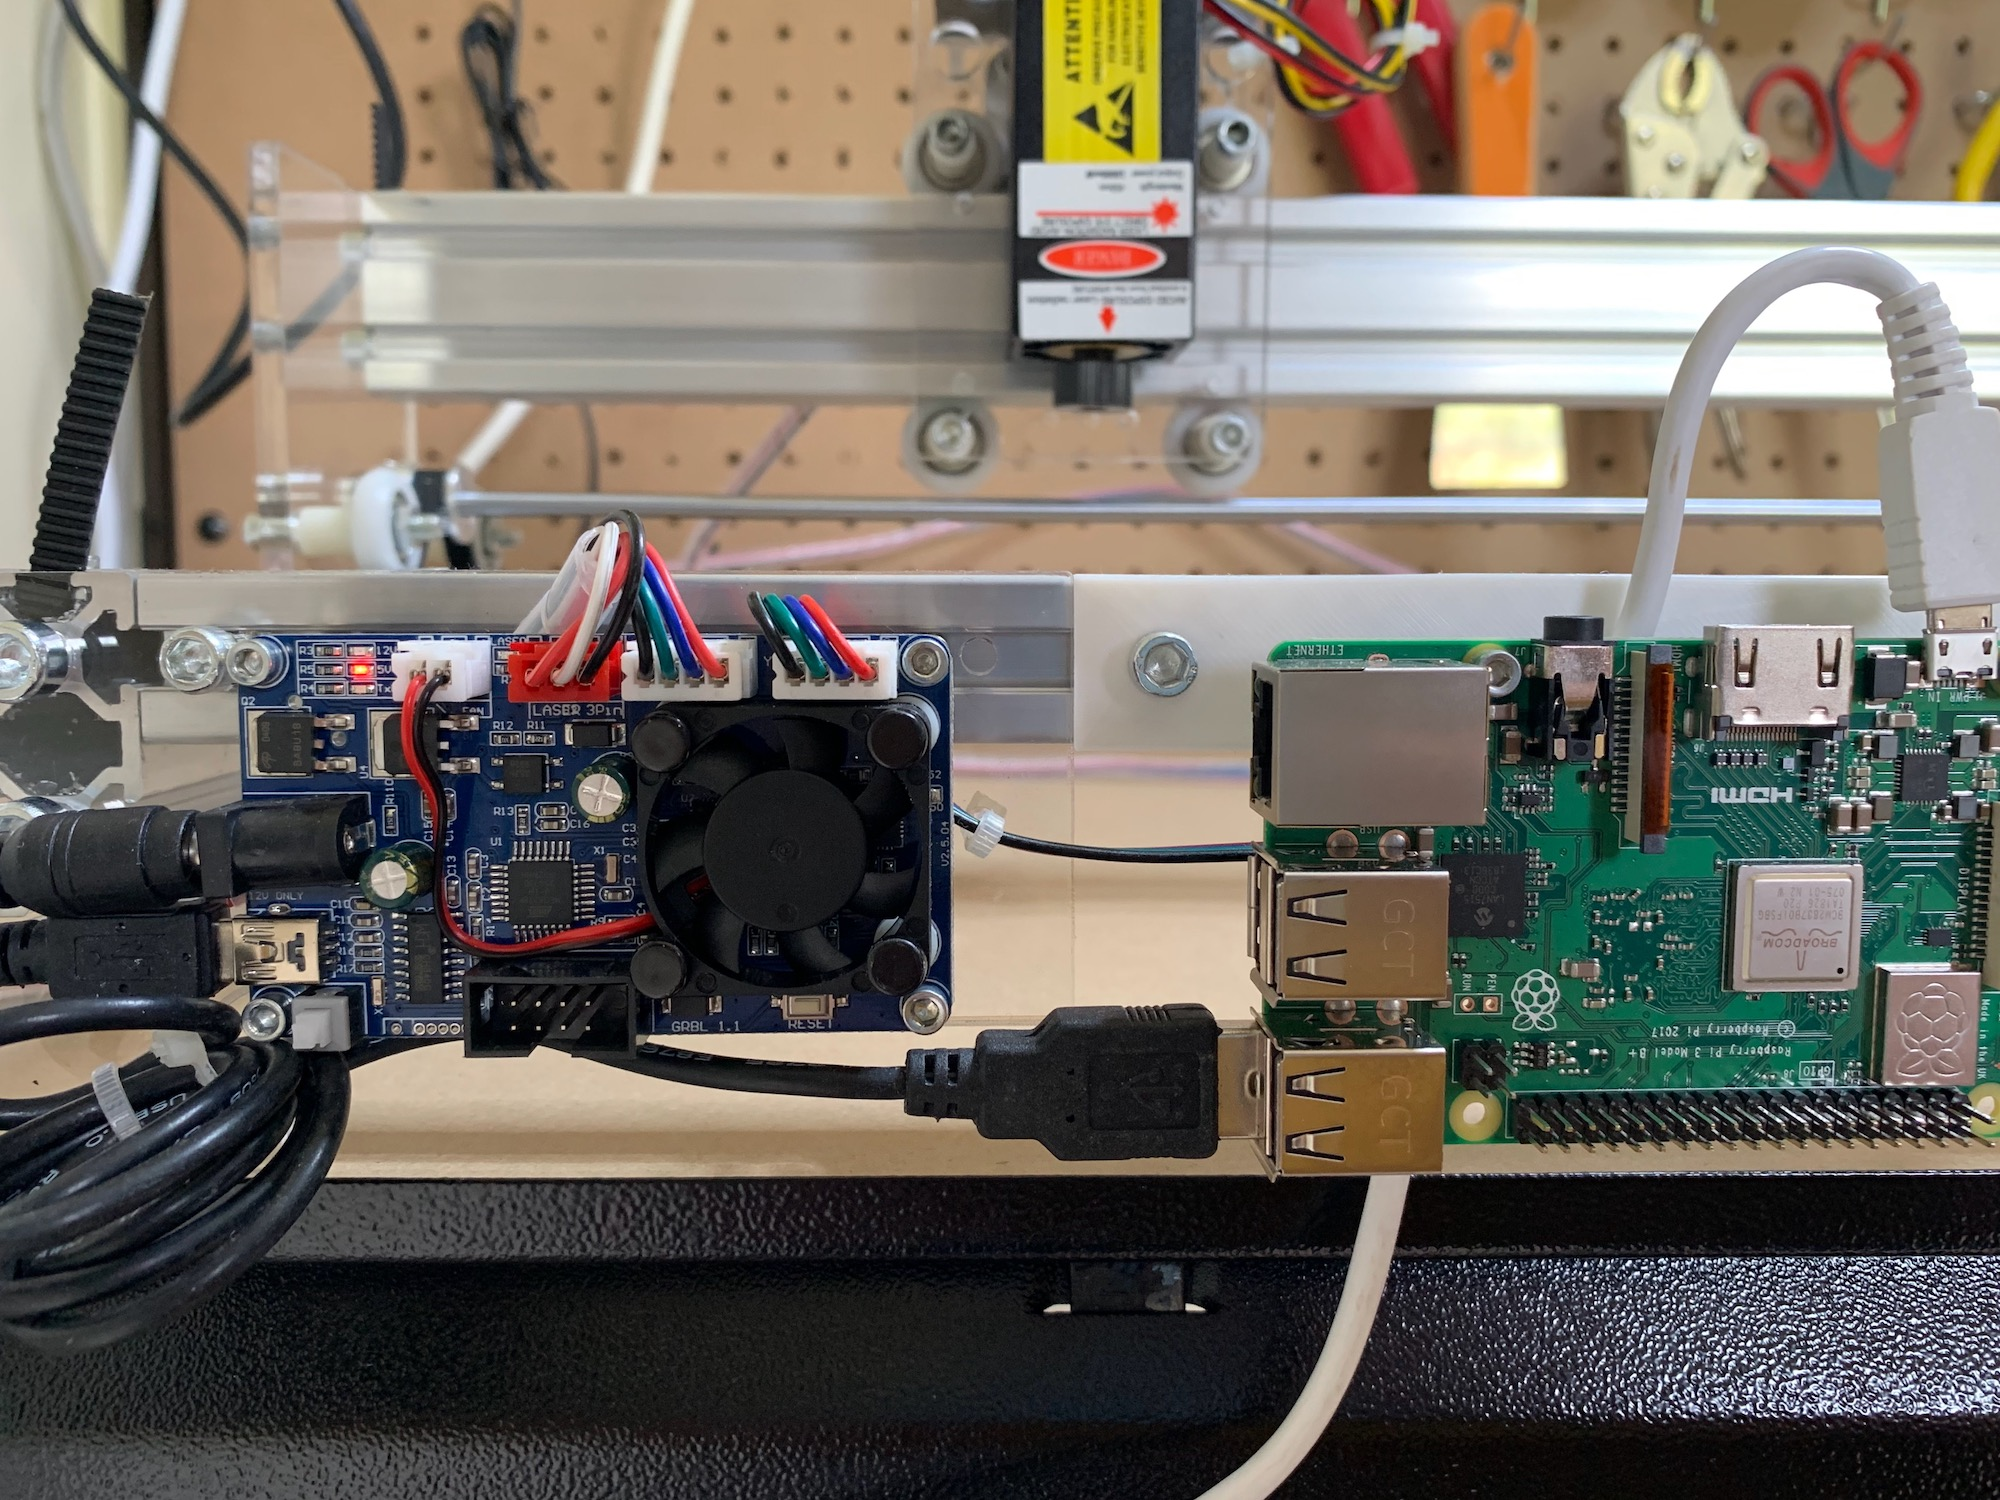 Raspberry Pi connected to controller